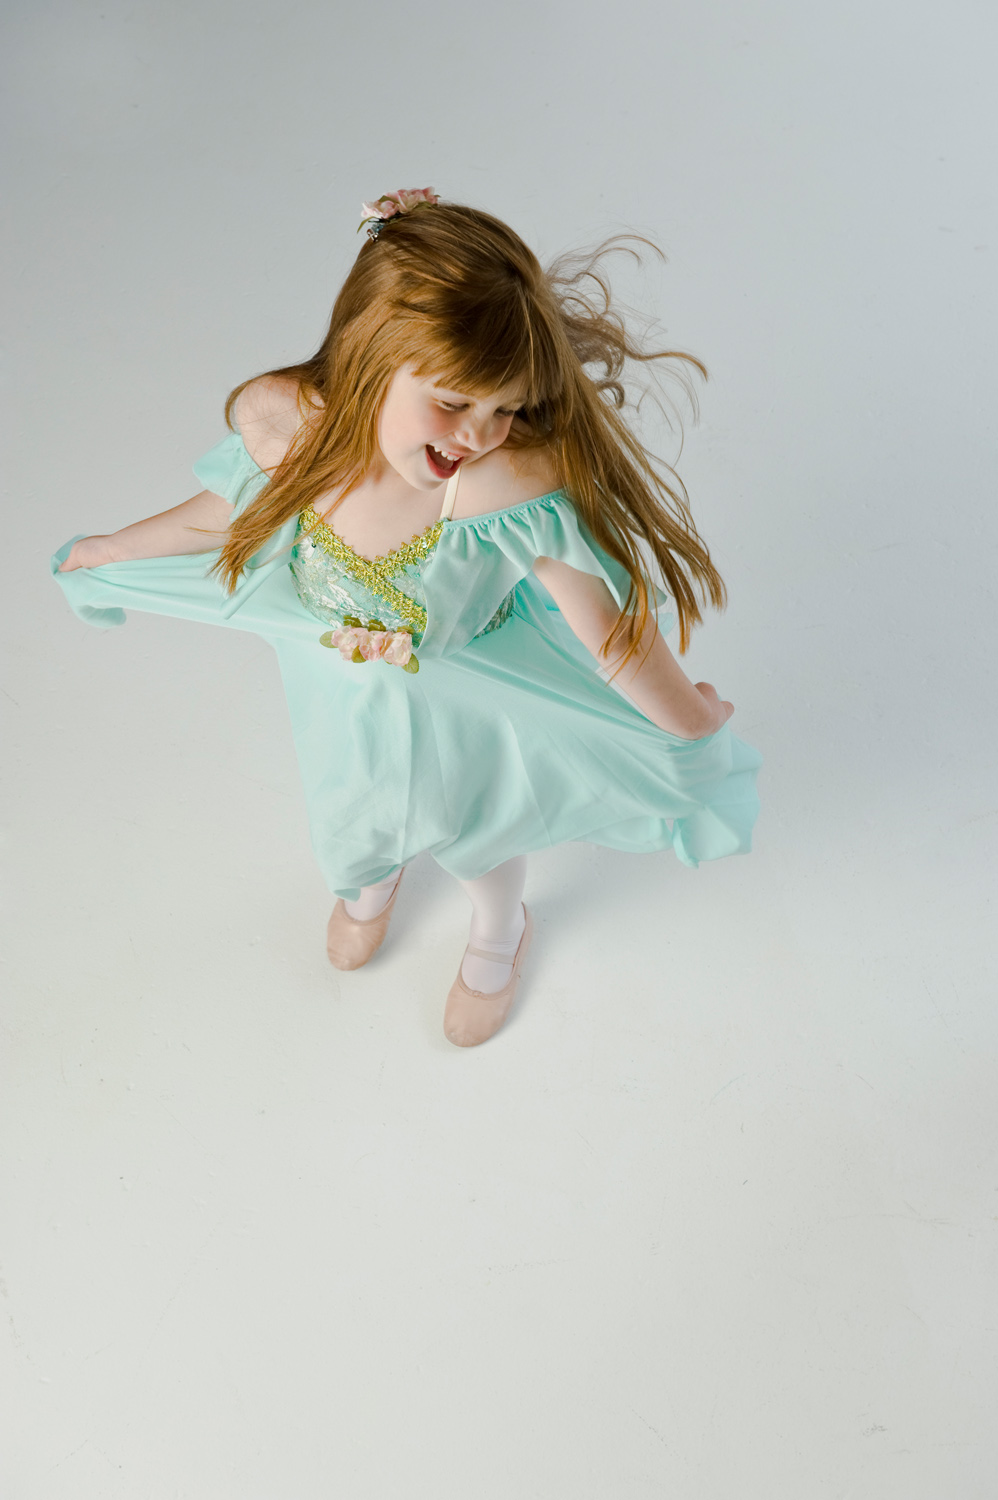 Nicole is a Chicago-based child photographer, family, baby photographer, commercial photographer, specializing in children's photography in Chicago, the Chicago North Shore suburban area and San Diego.